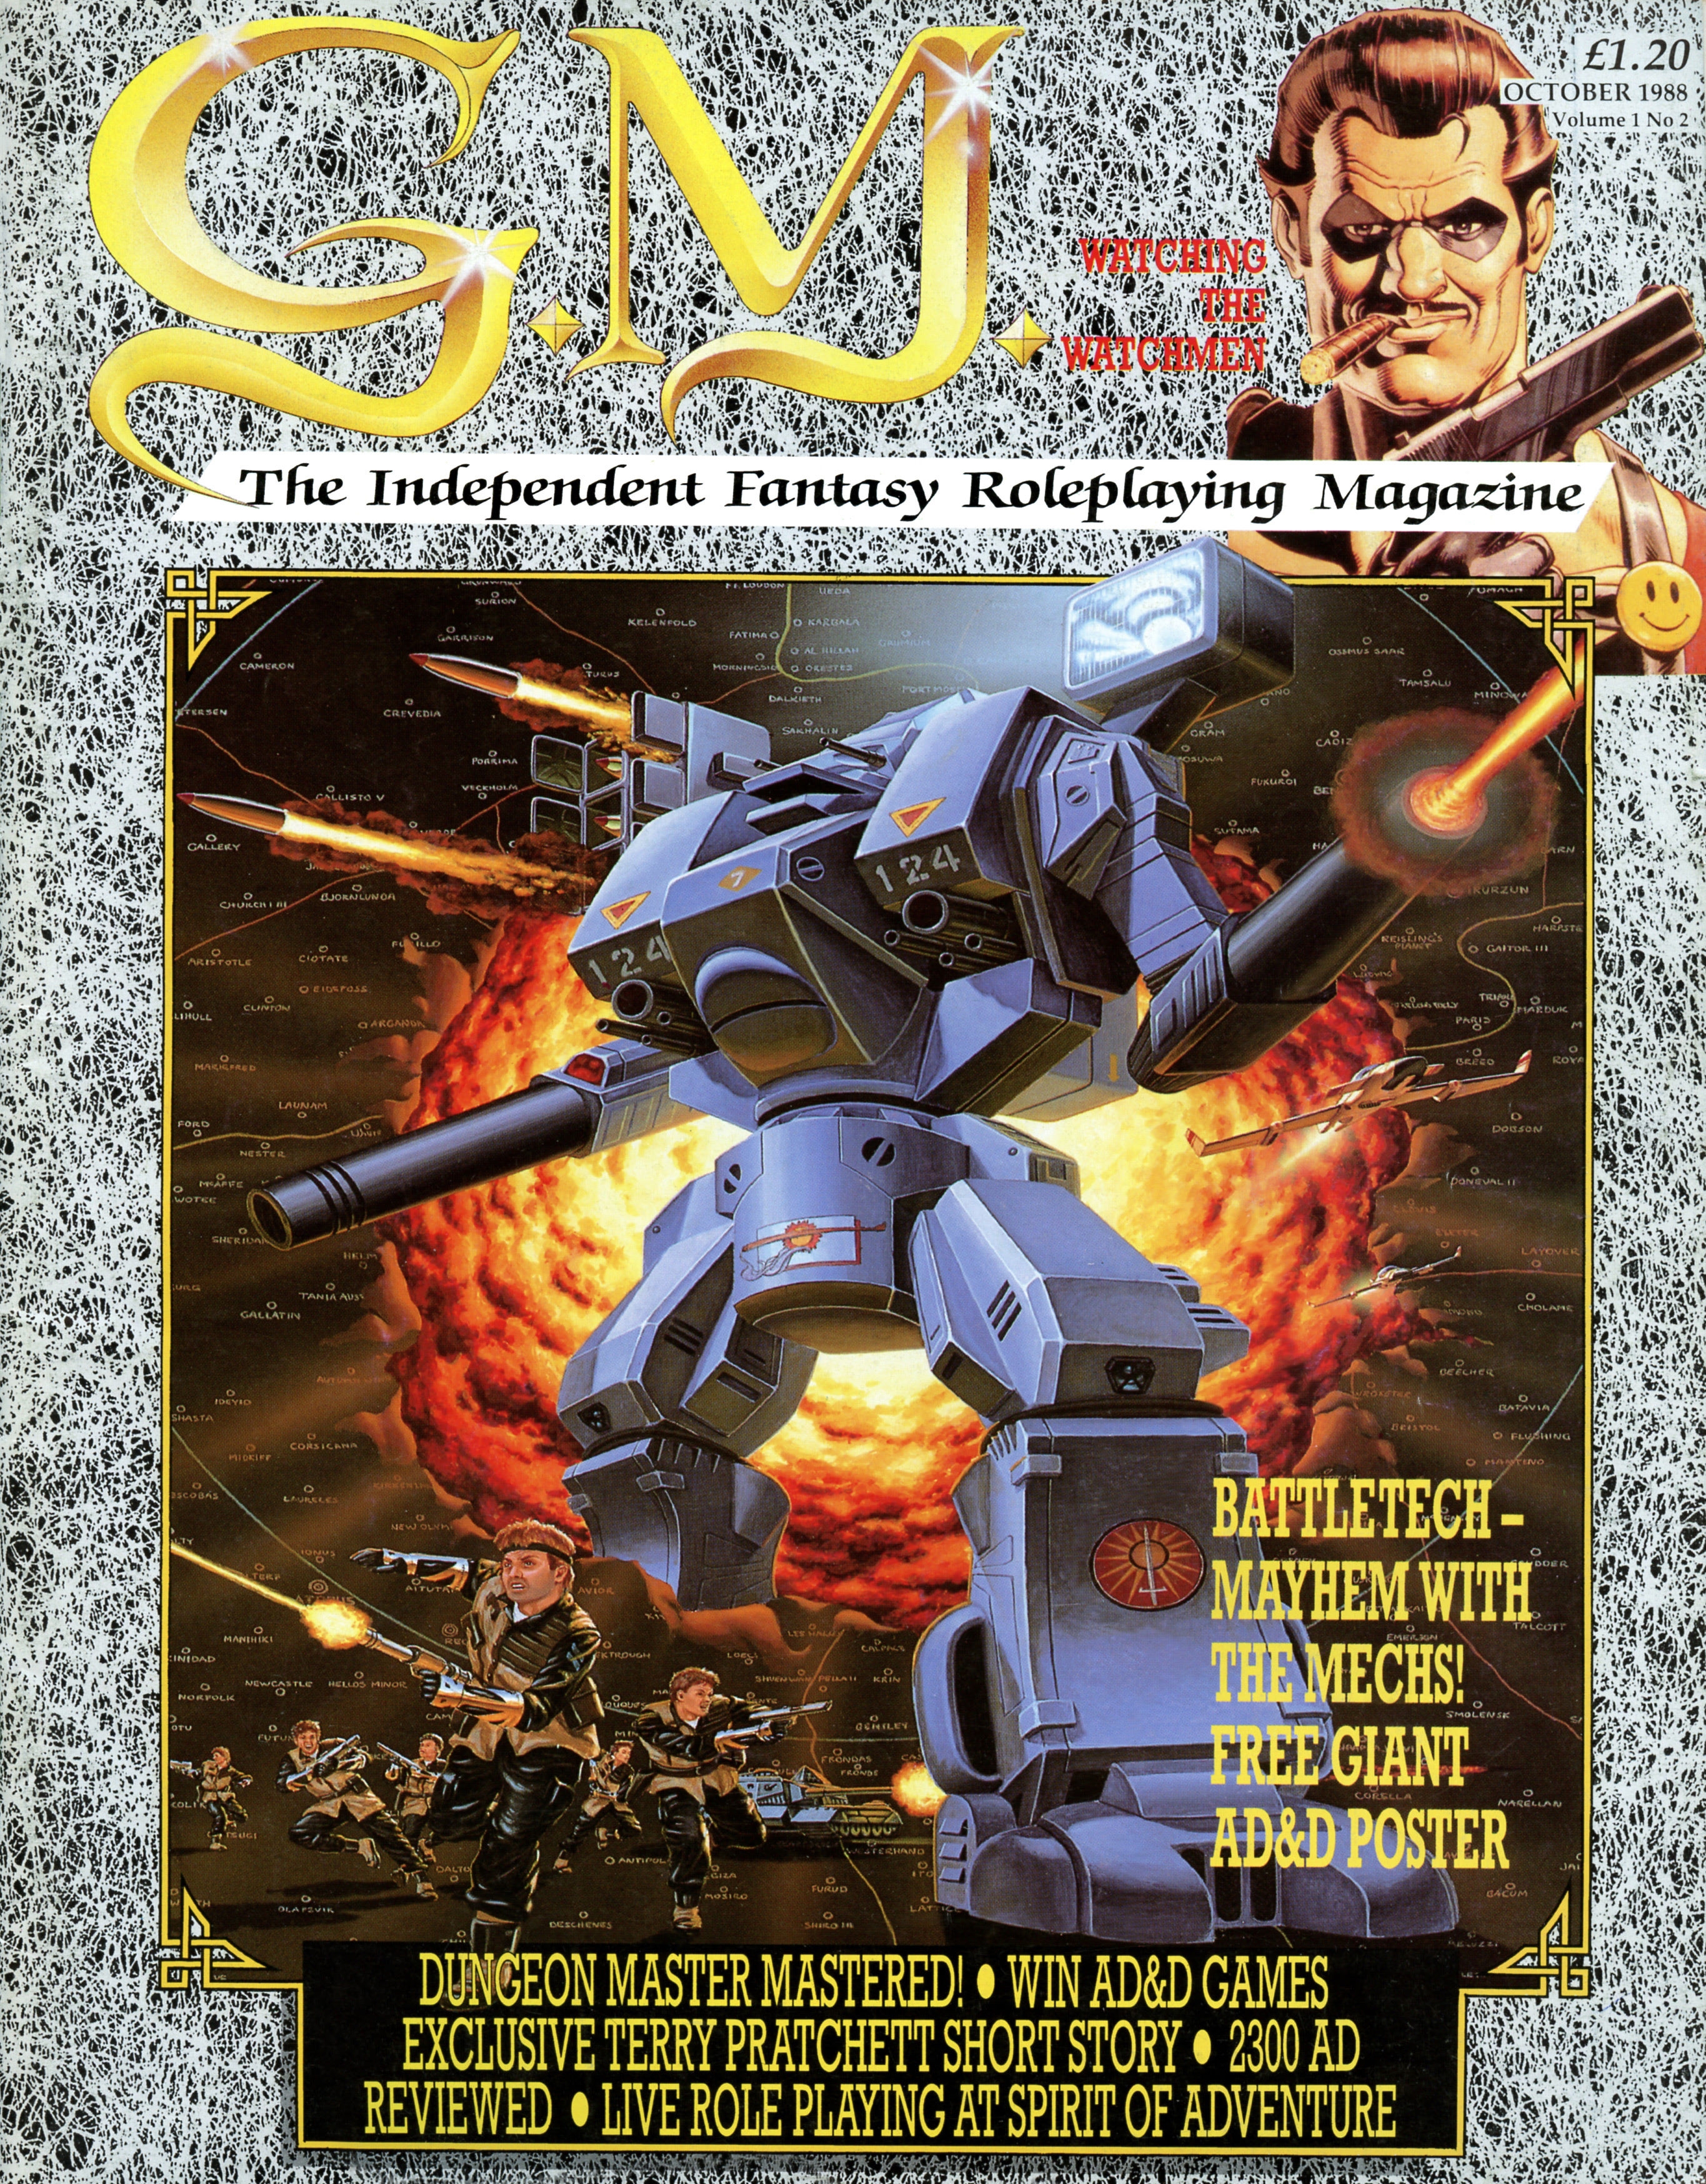 Dungeon Master Cover published in British magazine 'Game Master', Vol 1 No 2 October 1988